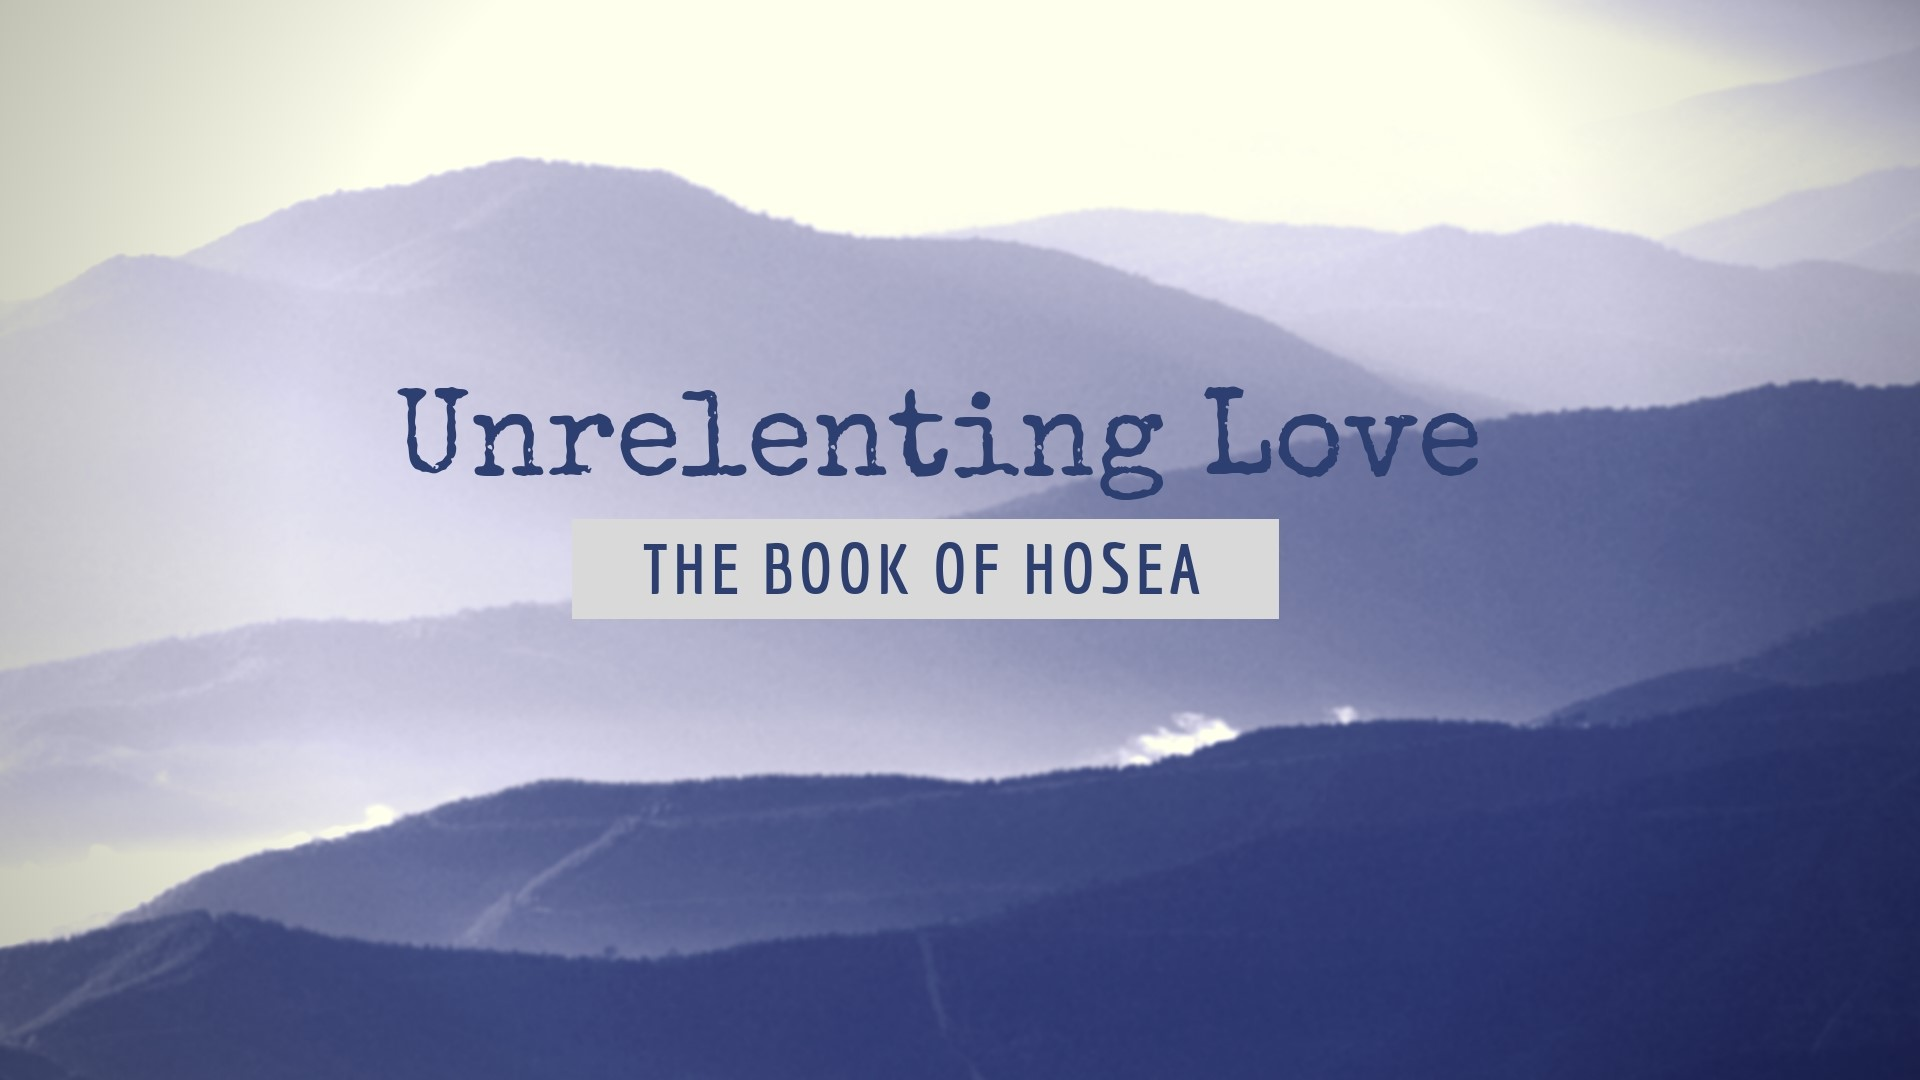 Unrelenting Love: The book of Hosea